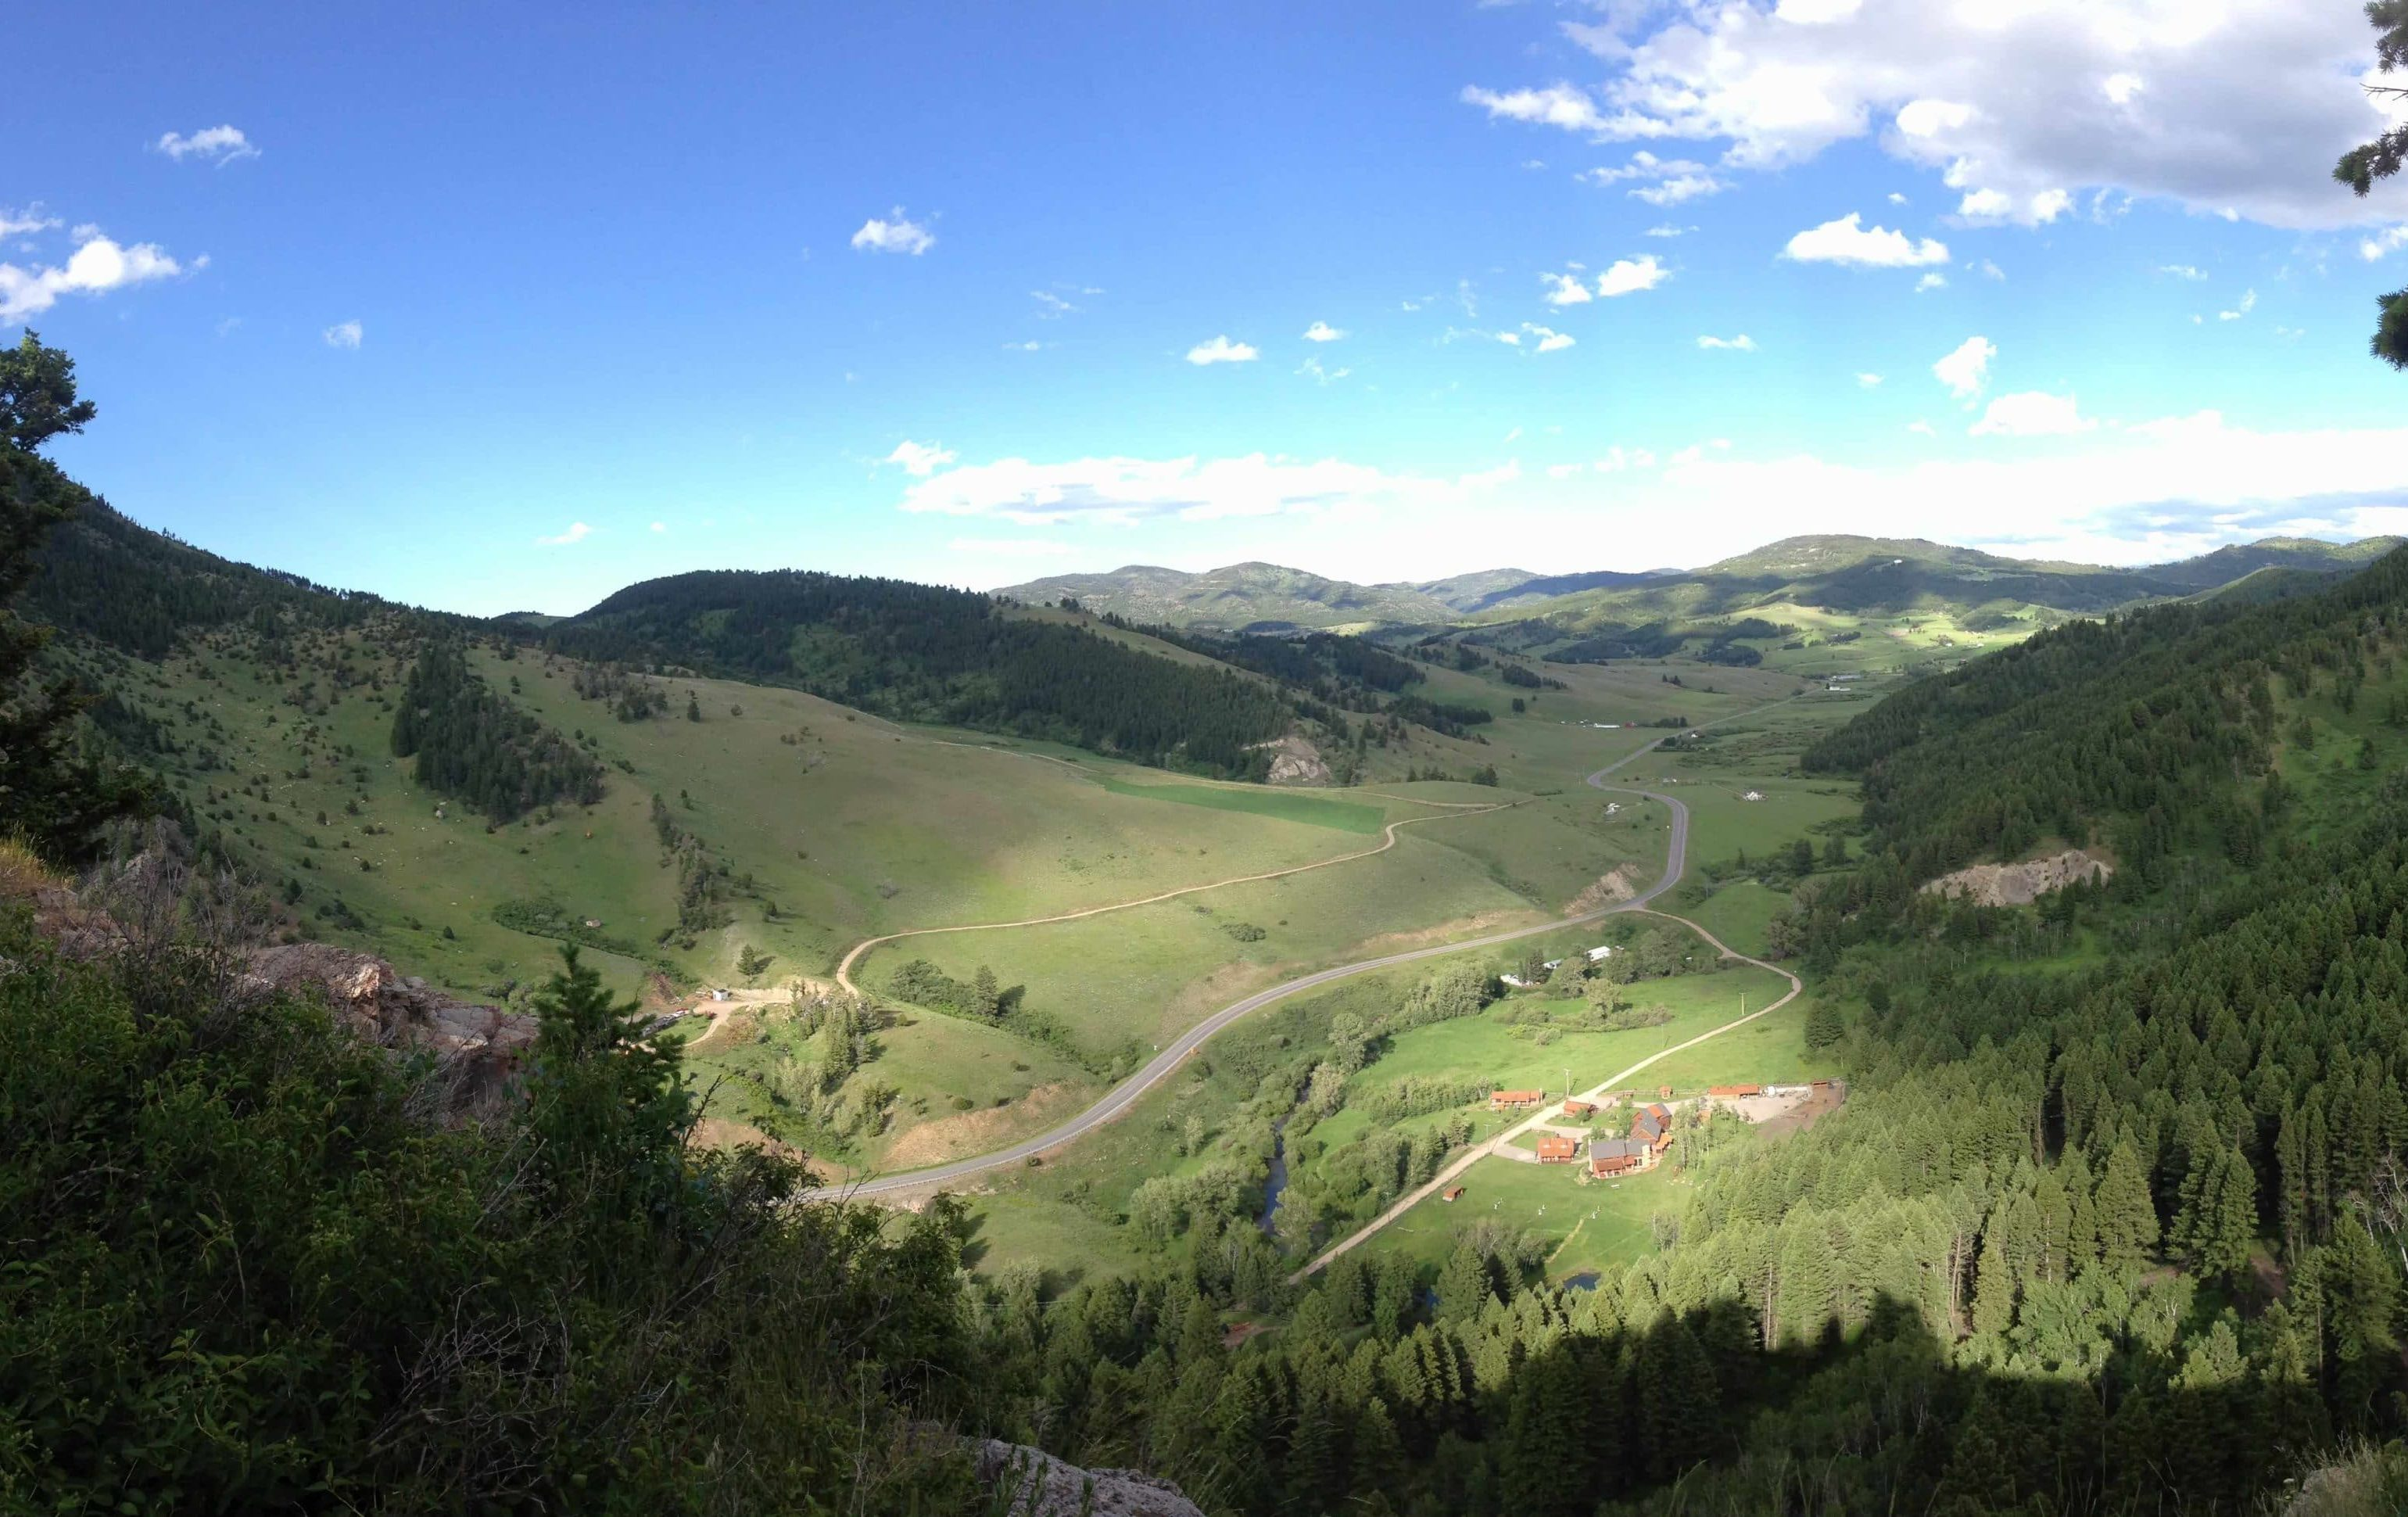 hiking trails in bridger canyon montana homes and real estate